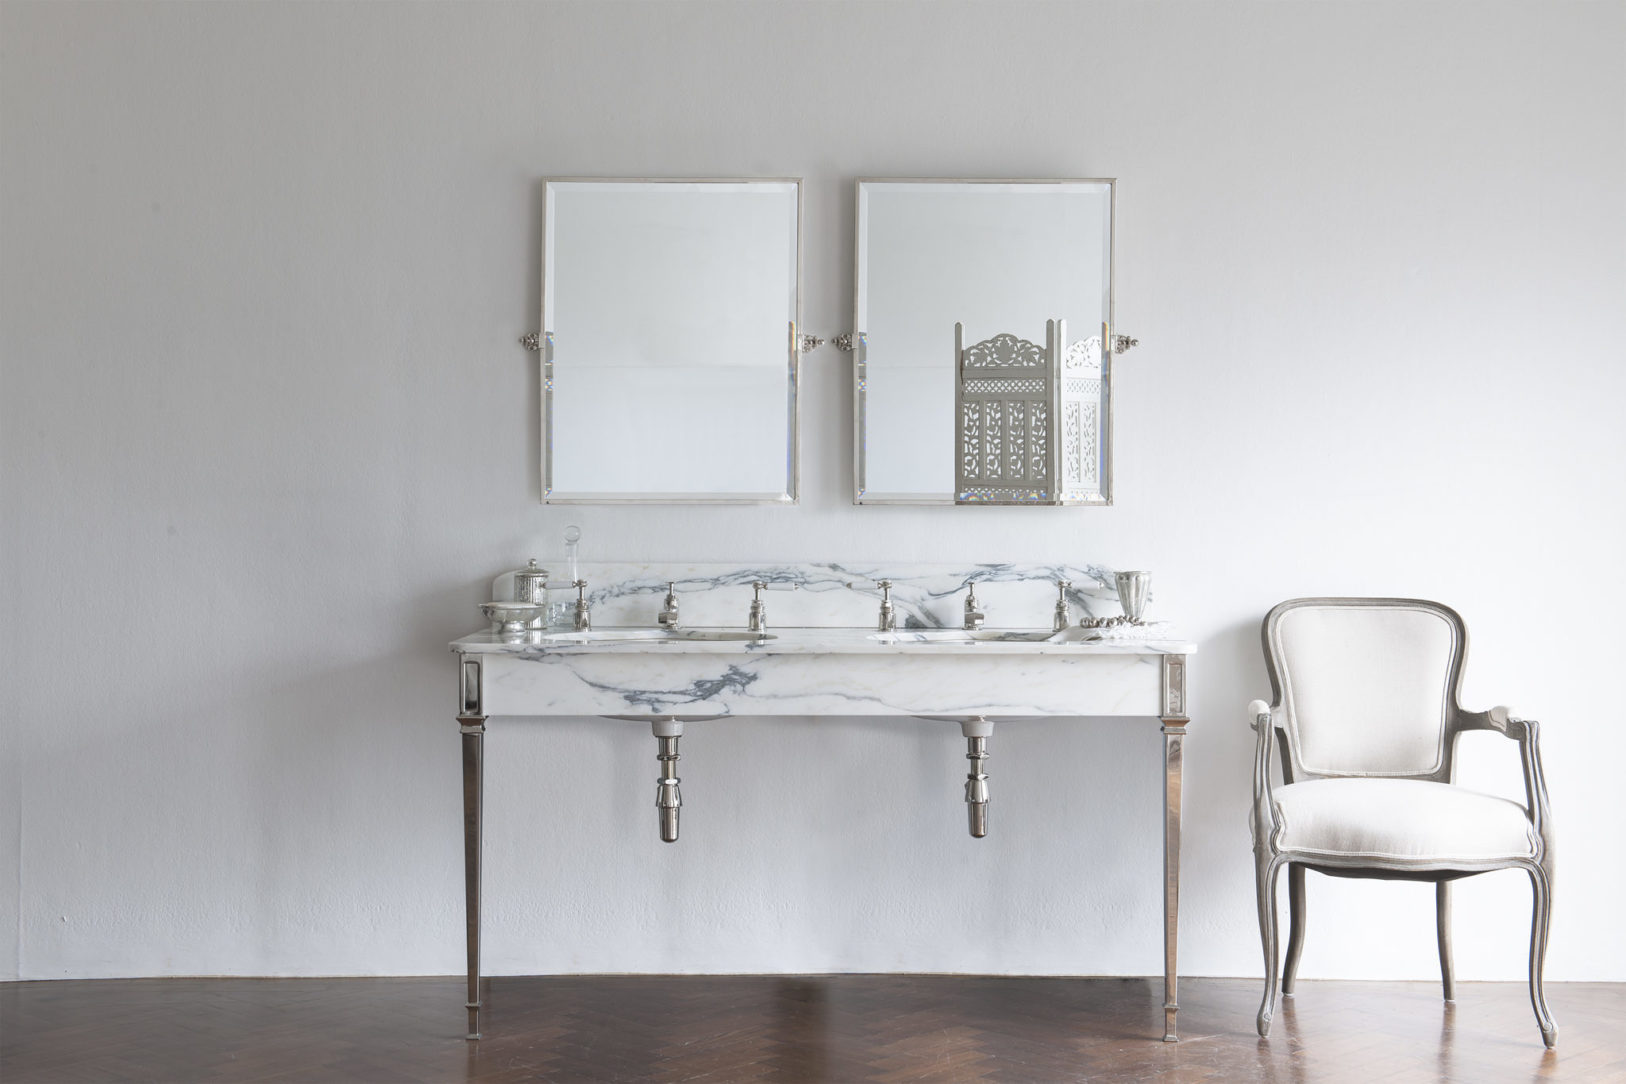 The Double Hebdern Vanity Basin Suite